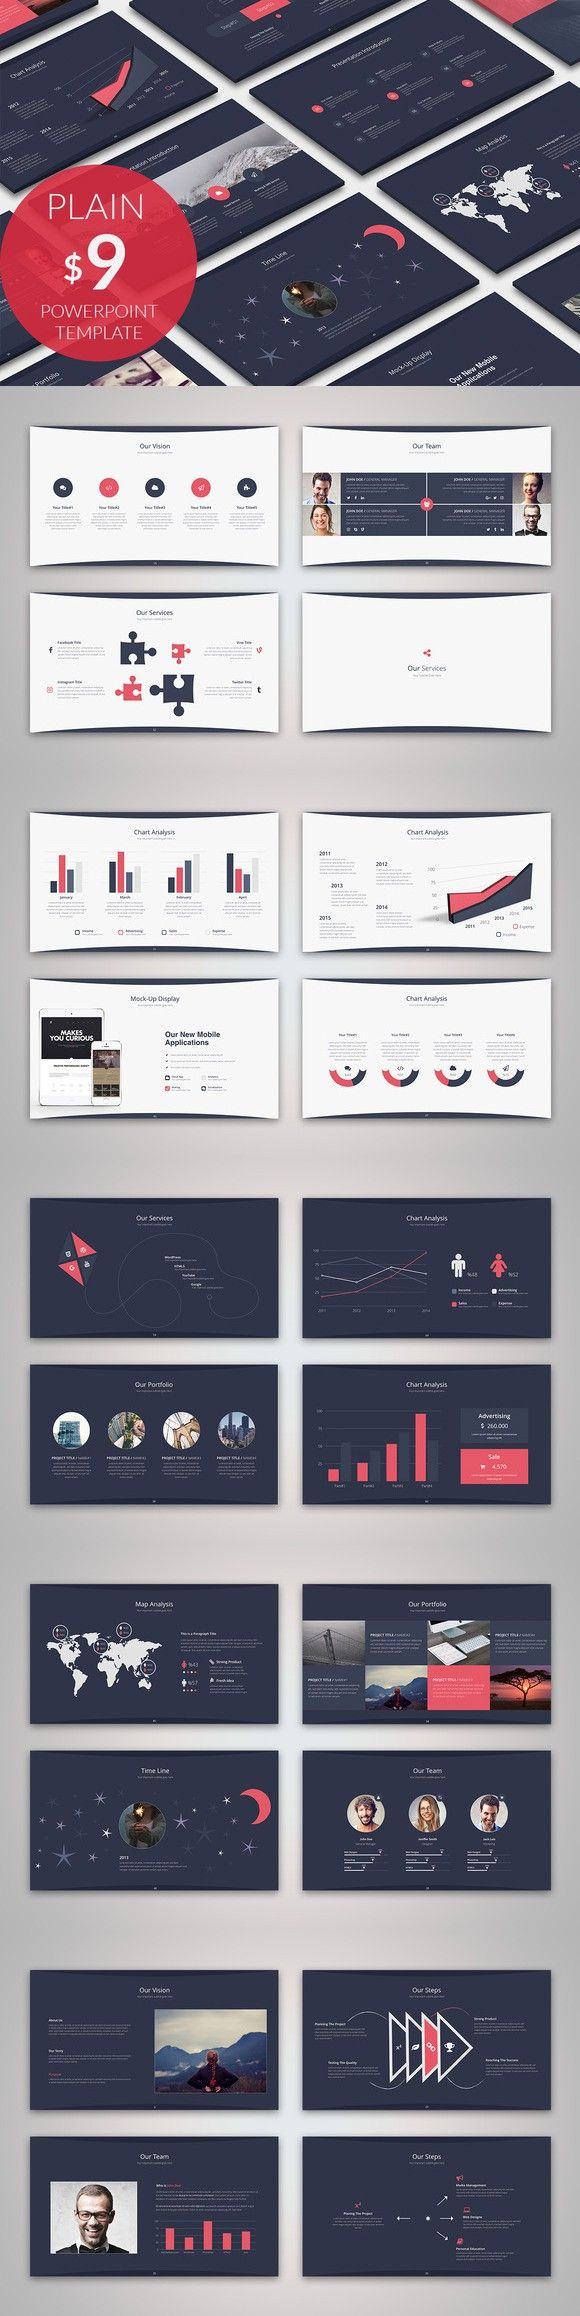 Best 25 business powerpoint templates ideas on pinterest plain business powerpoint template powerpoint templates 900 toneelgroepblik